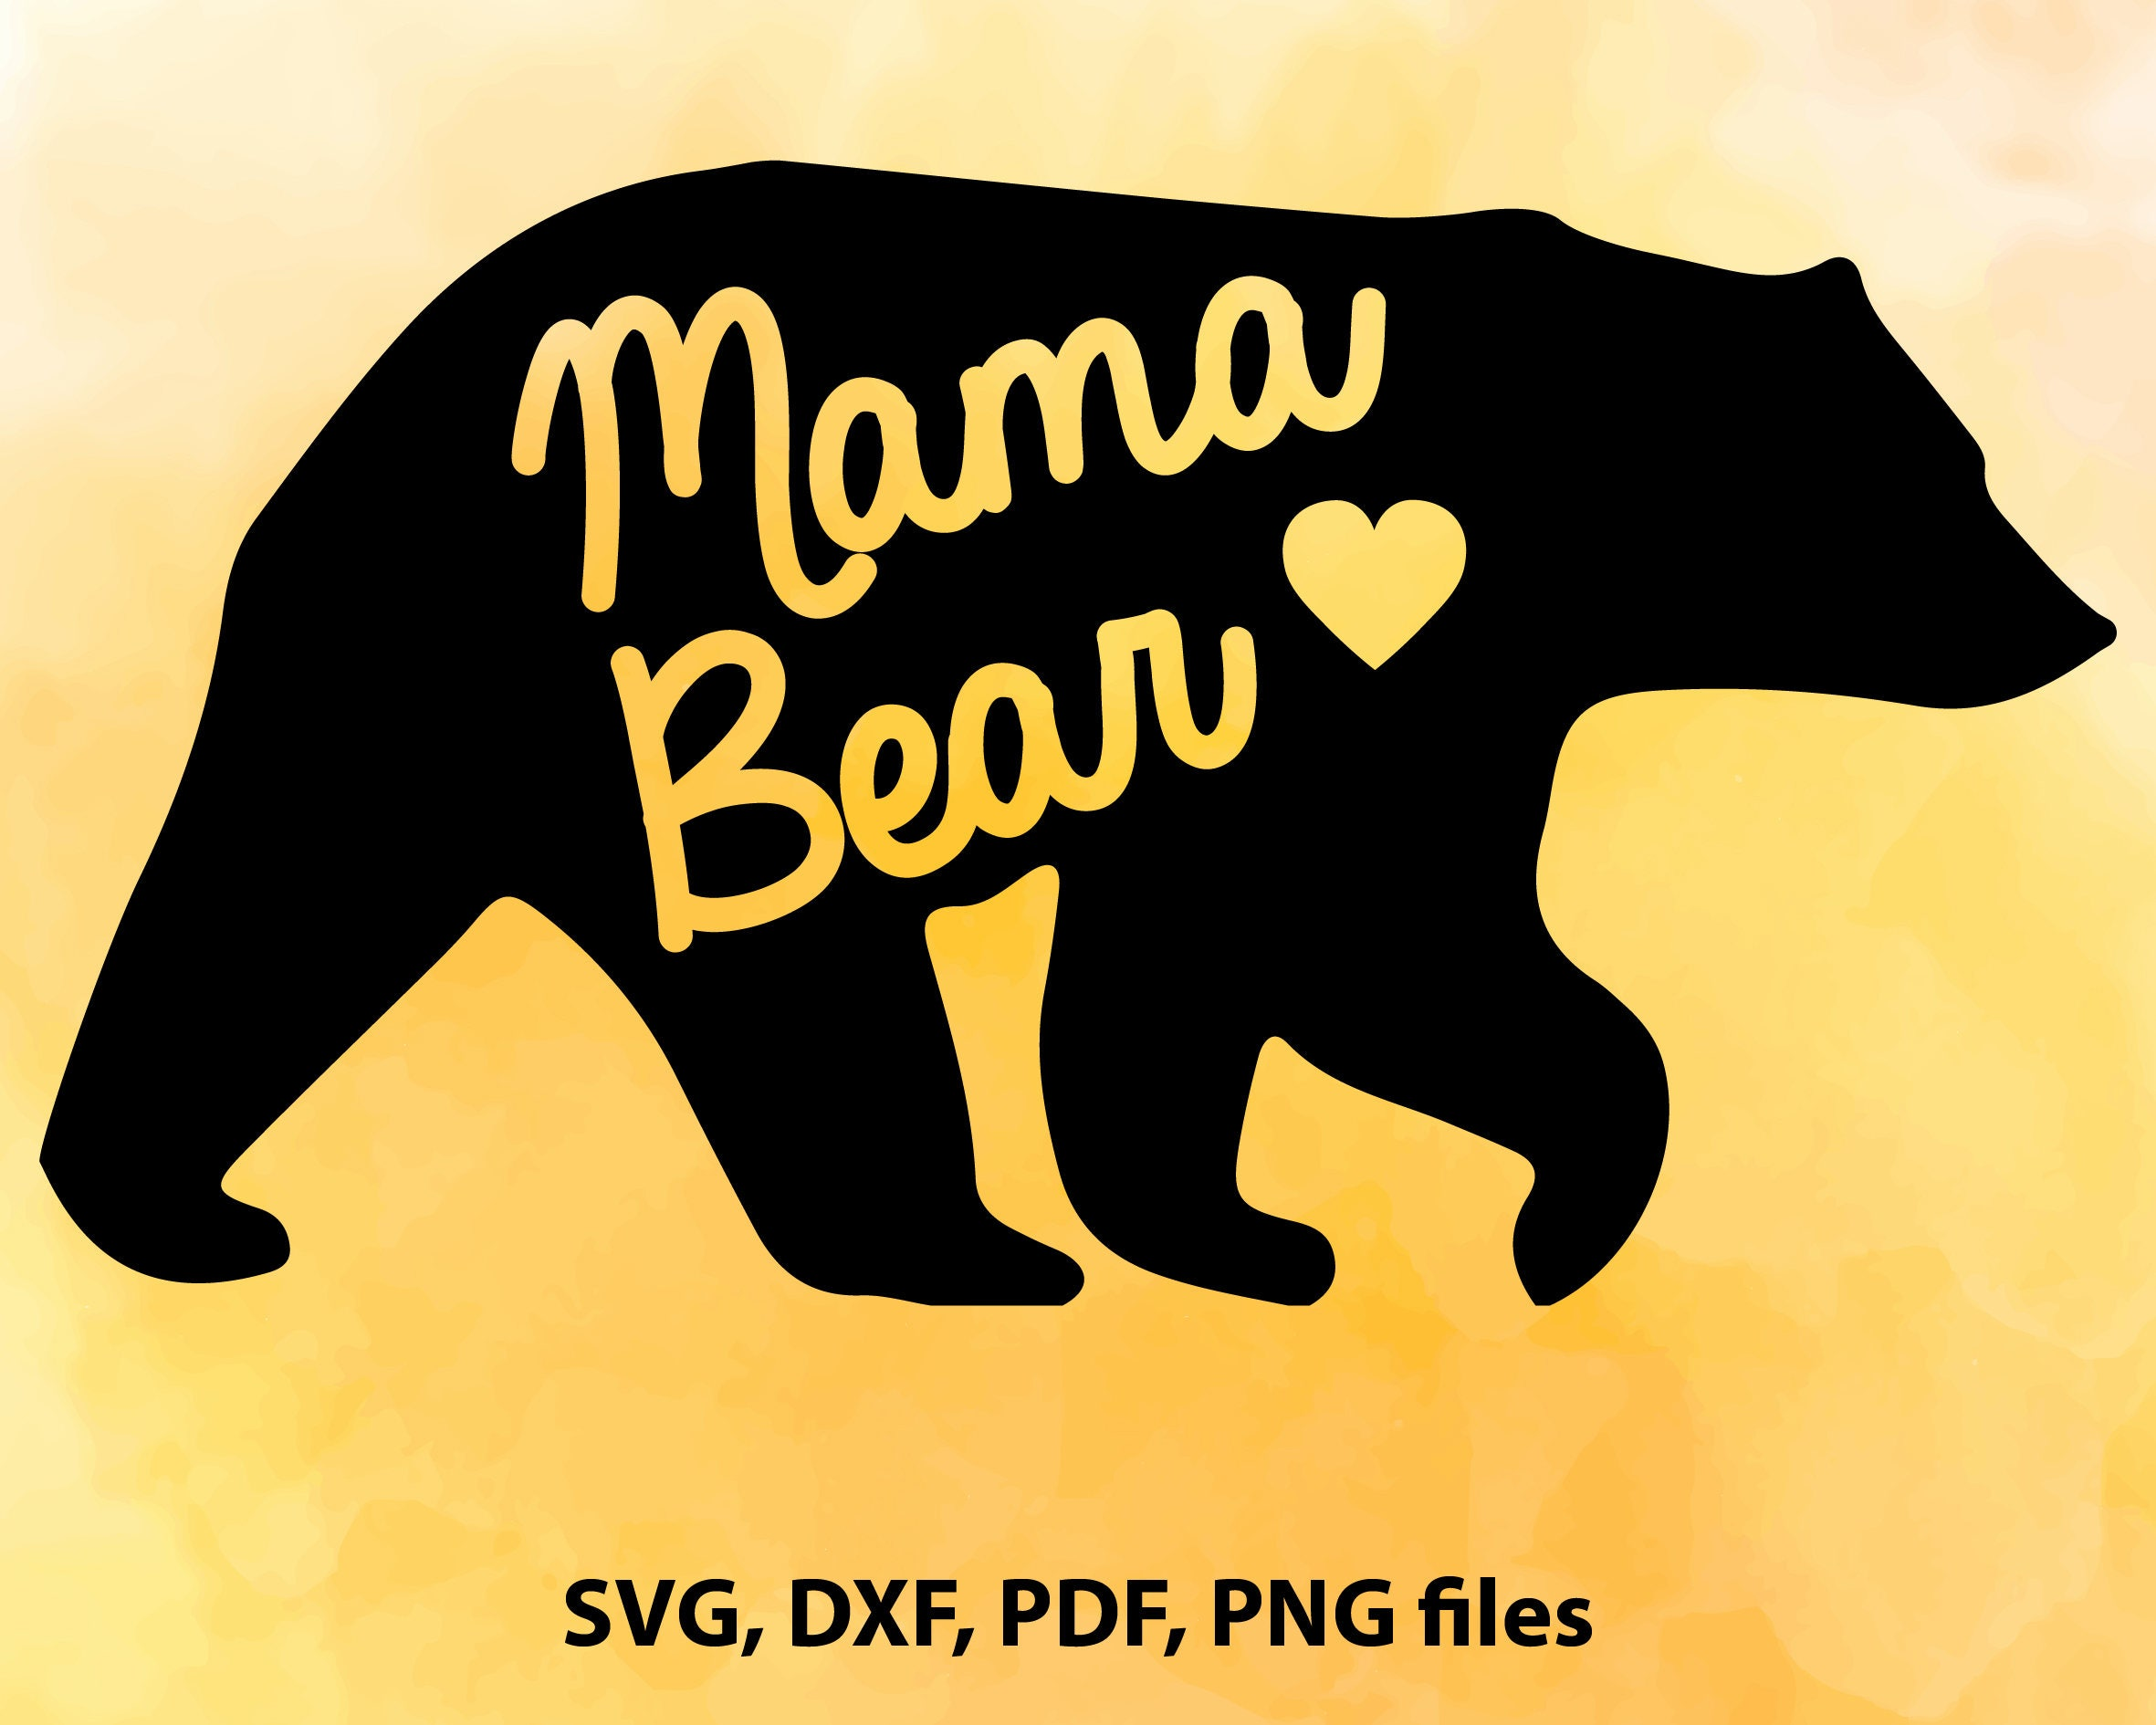 Graphic Design Software Free Mama Bear Svg File Mama Bear Dxf Mama Bear Cut File Mama